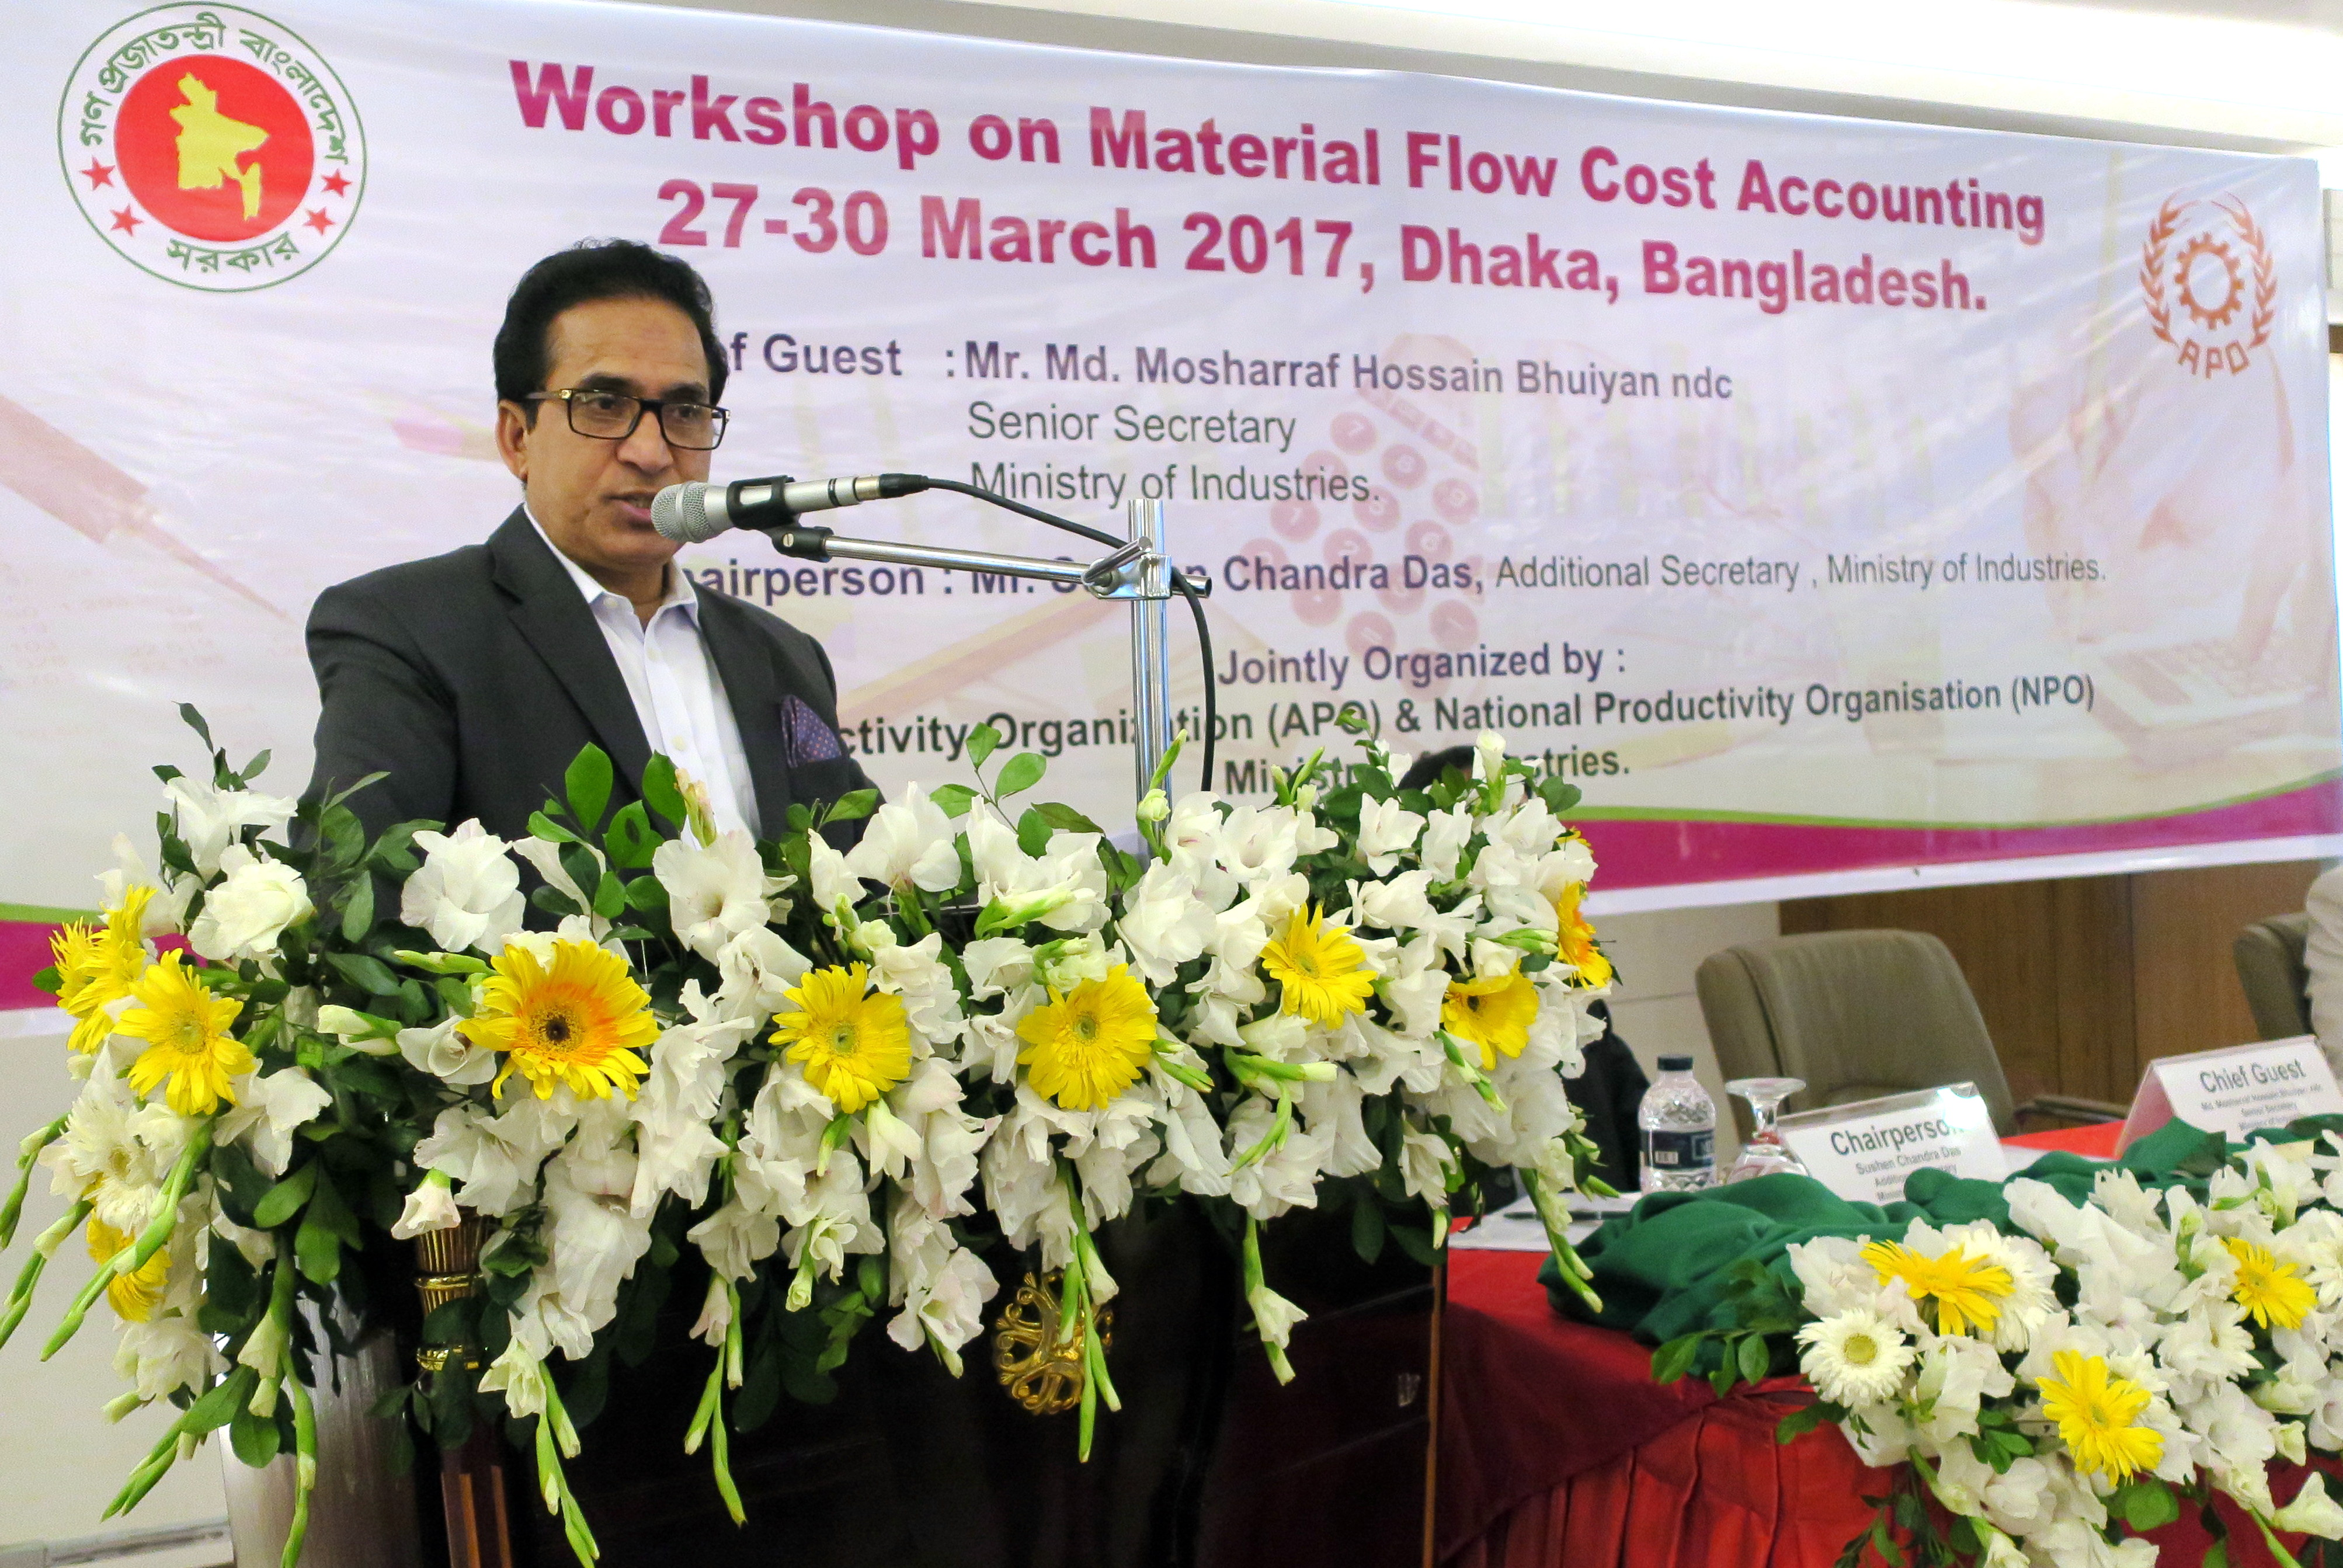 Bangladesh Ministry of Industries Senior Secretary M. Mosharraf Hossain Bhuiyan  speaking at the inaugural session of the Workshop on MFCA.